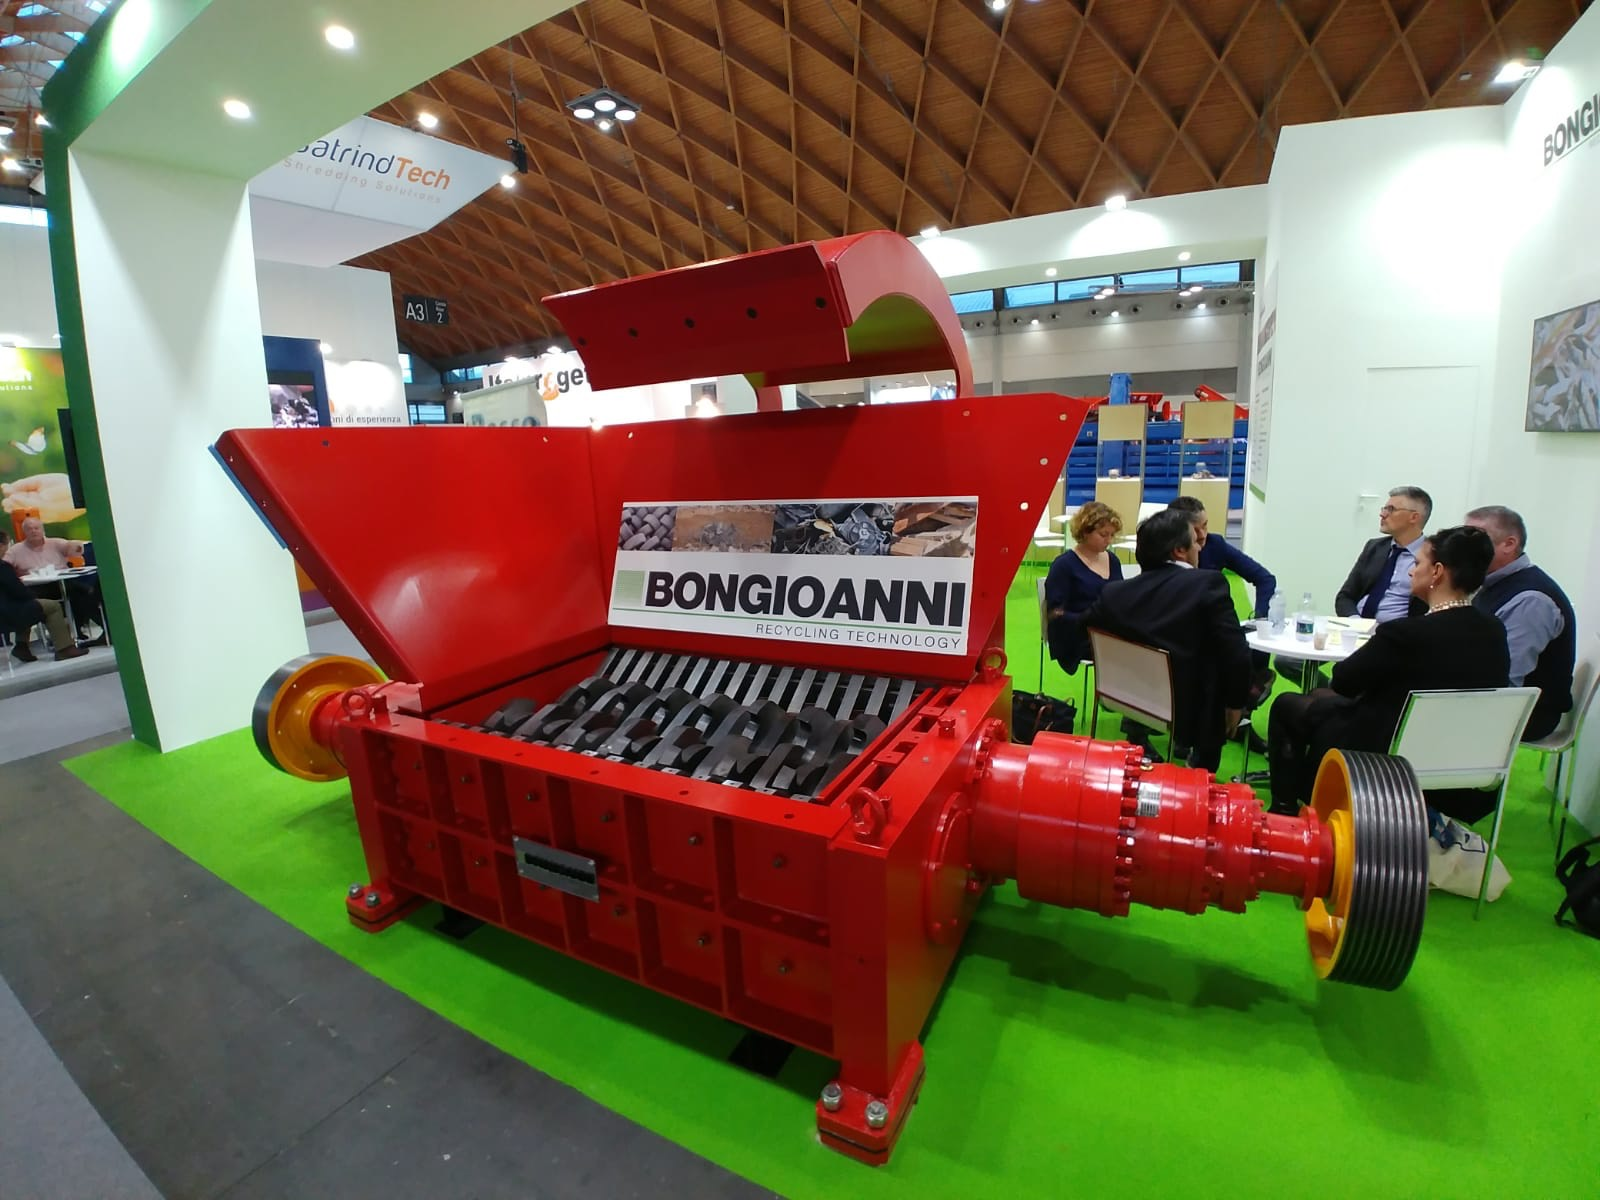 Bongioanni Recycling Technology